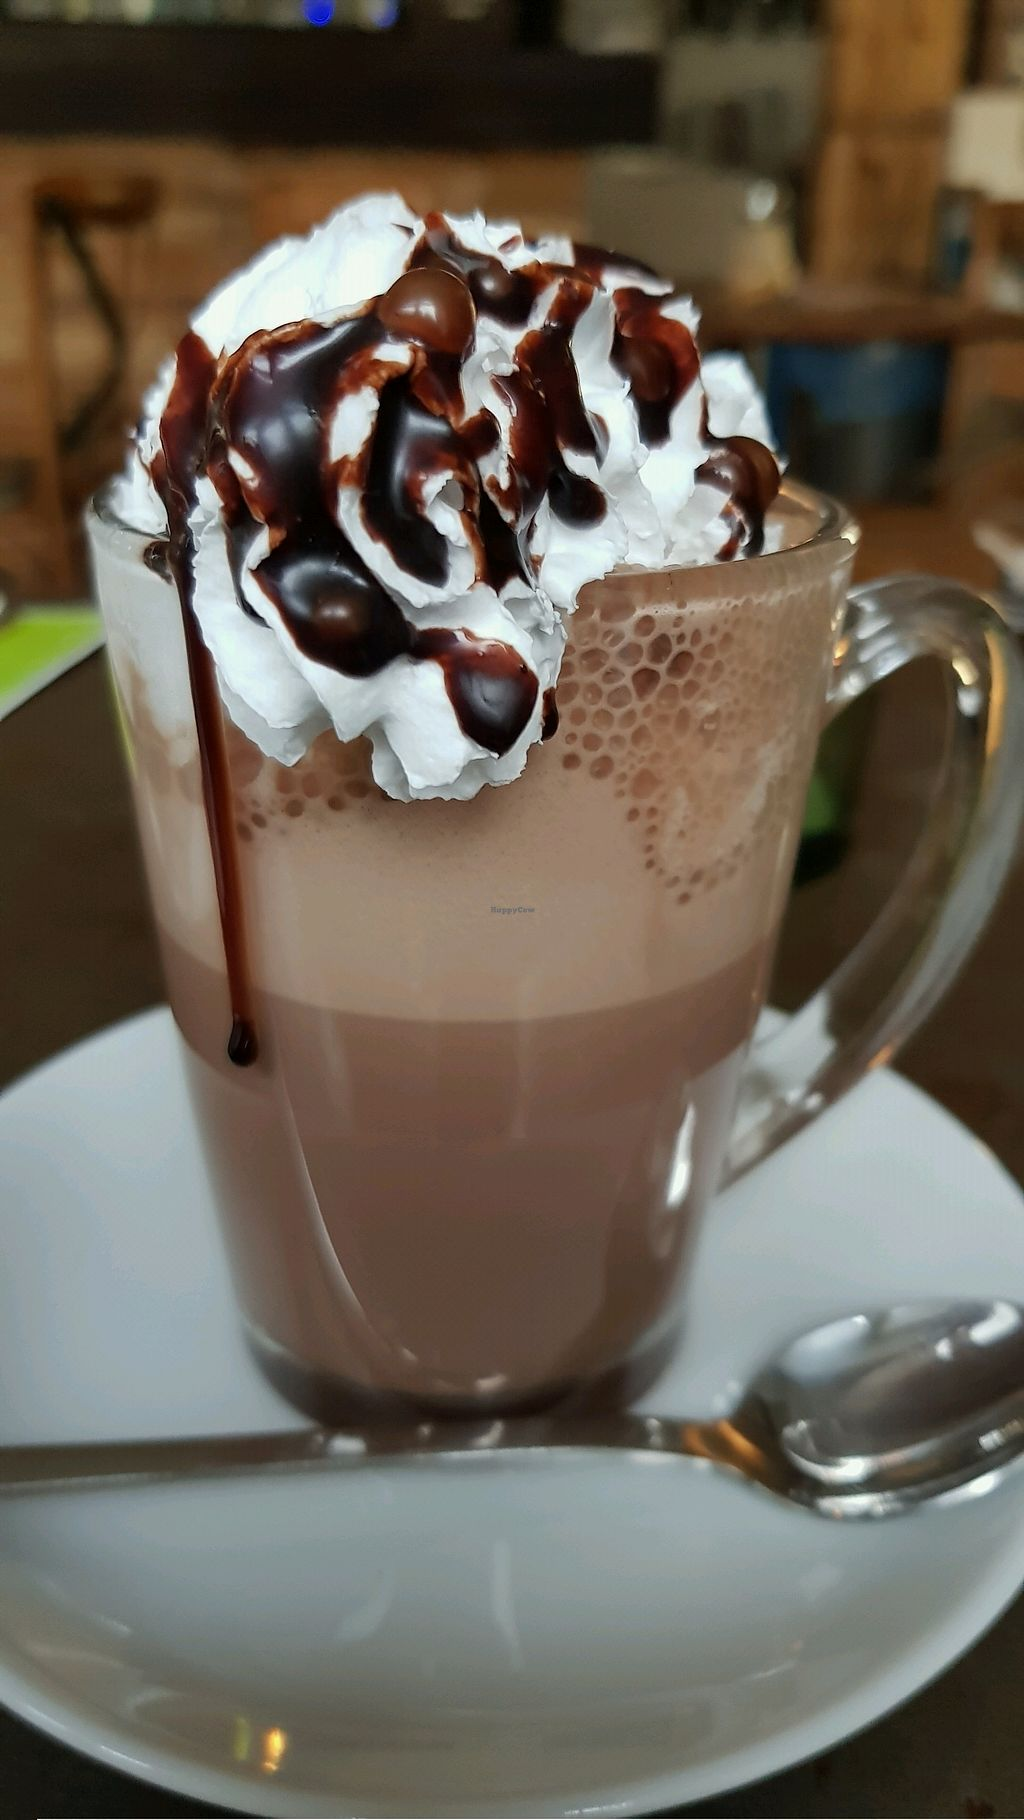 """Photo of Valladares  by <a href=""""/members/profile/Tank242"""">Tank242</a> <br/>Hot Chocolate with vegan cream  <br/> November 12, 2017  - <a href='/contact/abuse/image/54507/324629'>Report</a>"""